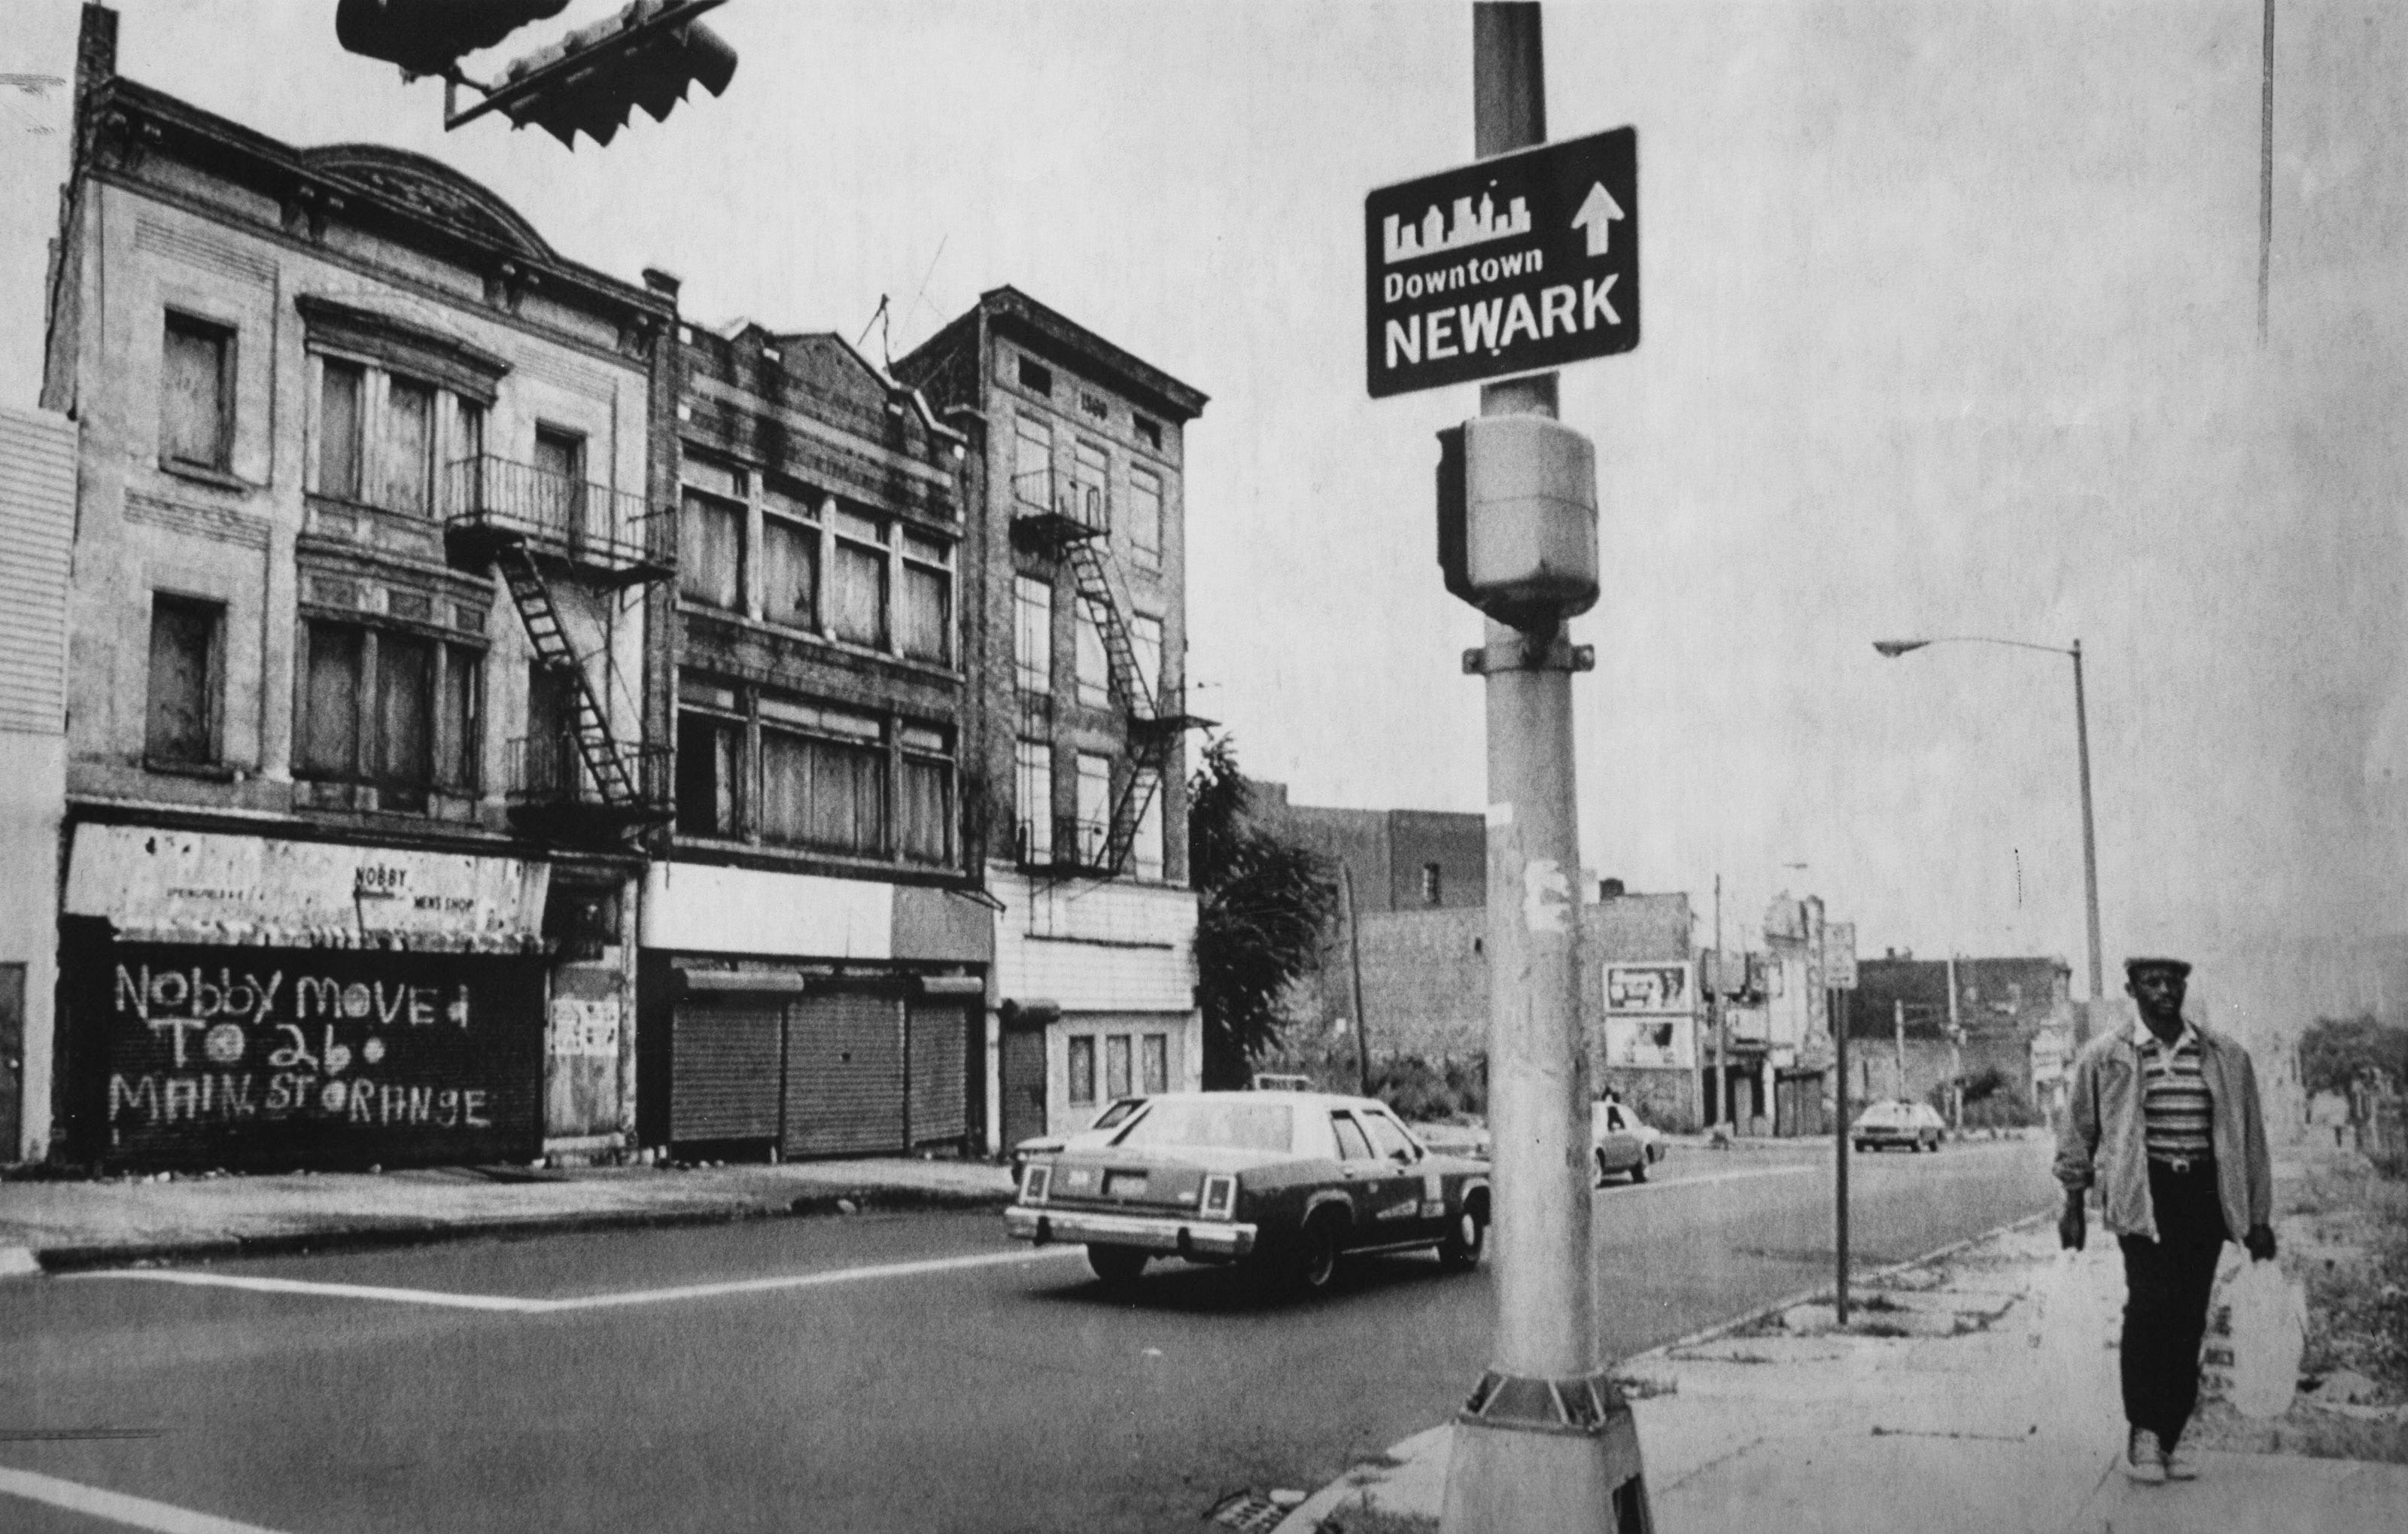 Springwood Avenue in Newark shown in 1986. Scene of the 1967 riots, the neighborhood was in dire condition when crack hit in the late 1980s.